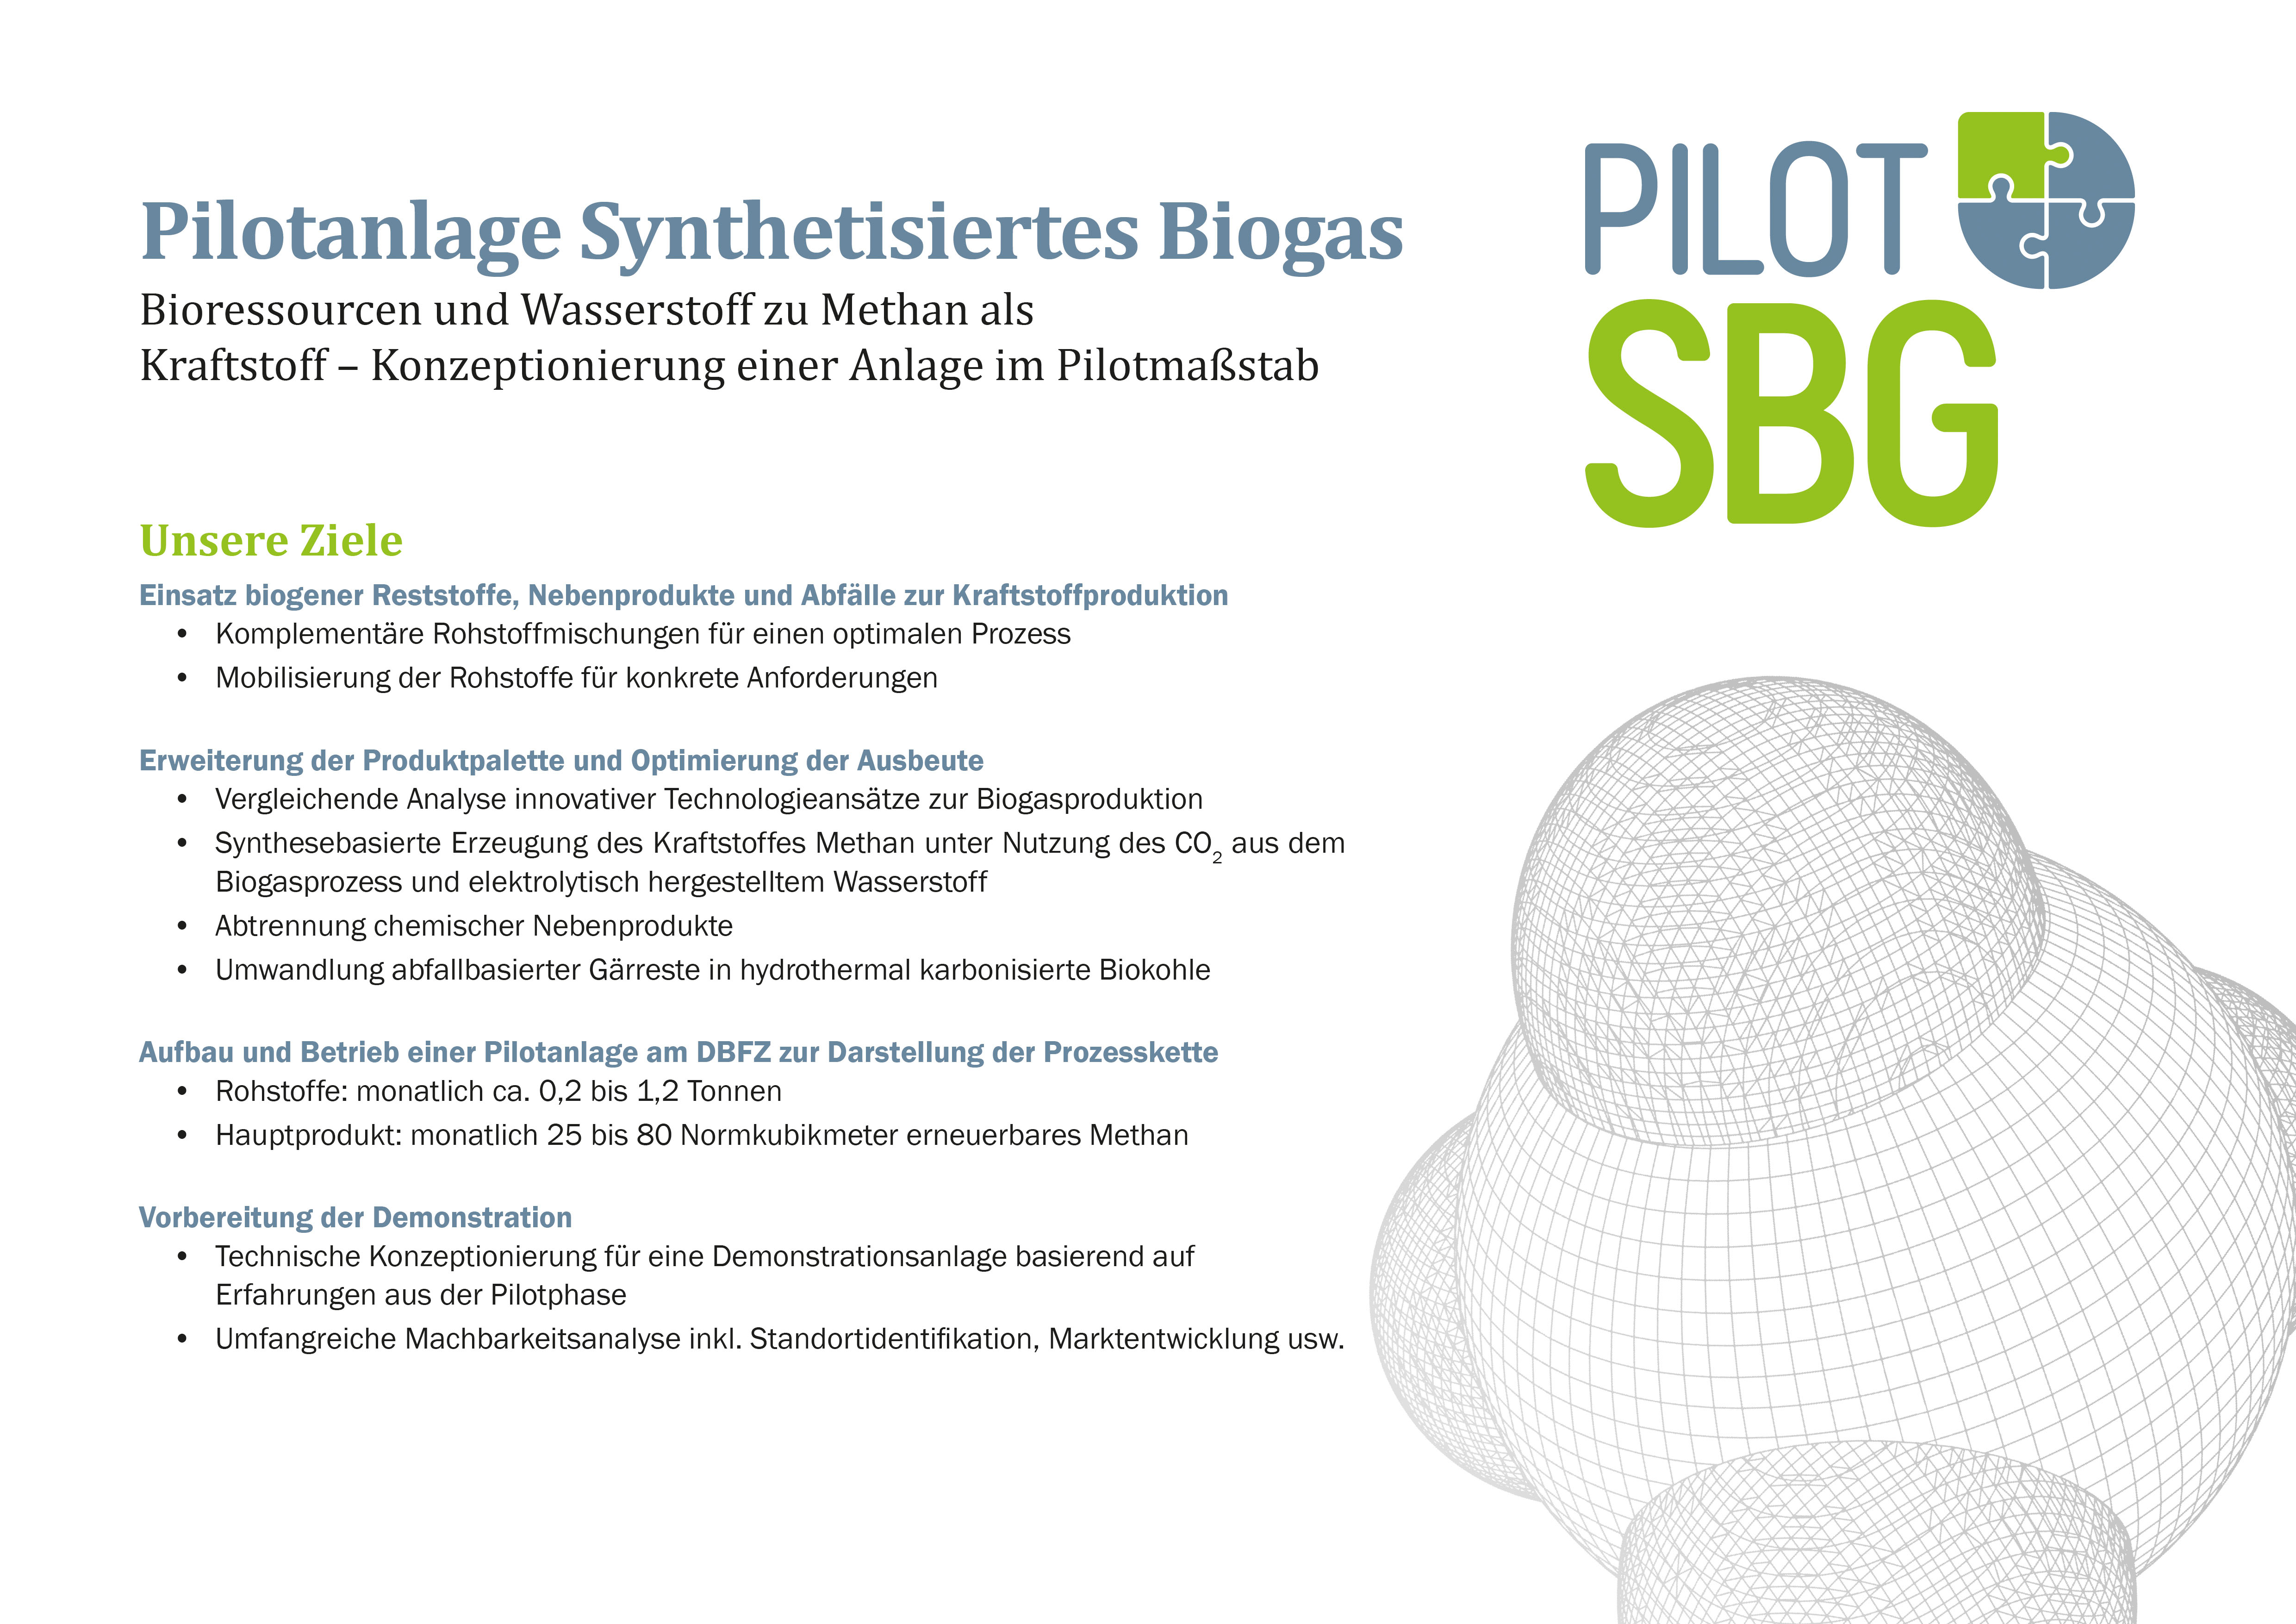 Flyer PILOT-SBG (Pilot plant synthetic biogas)